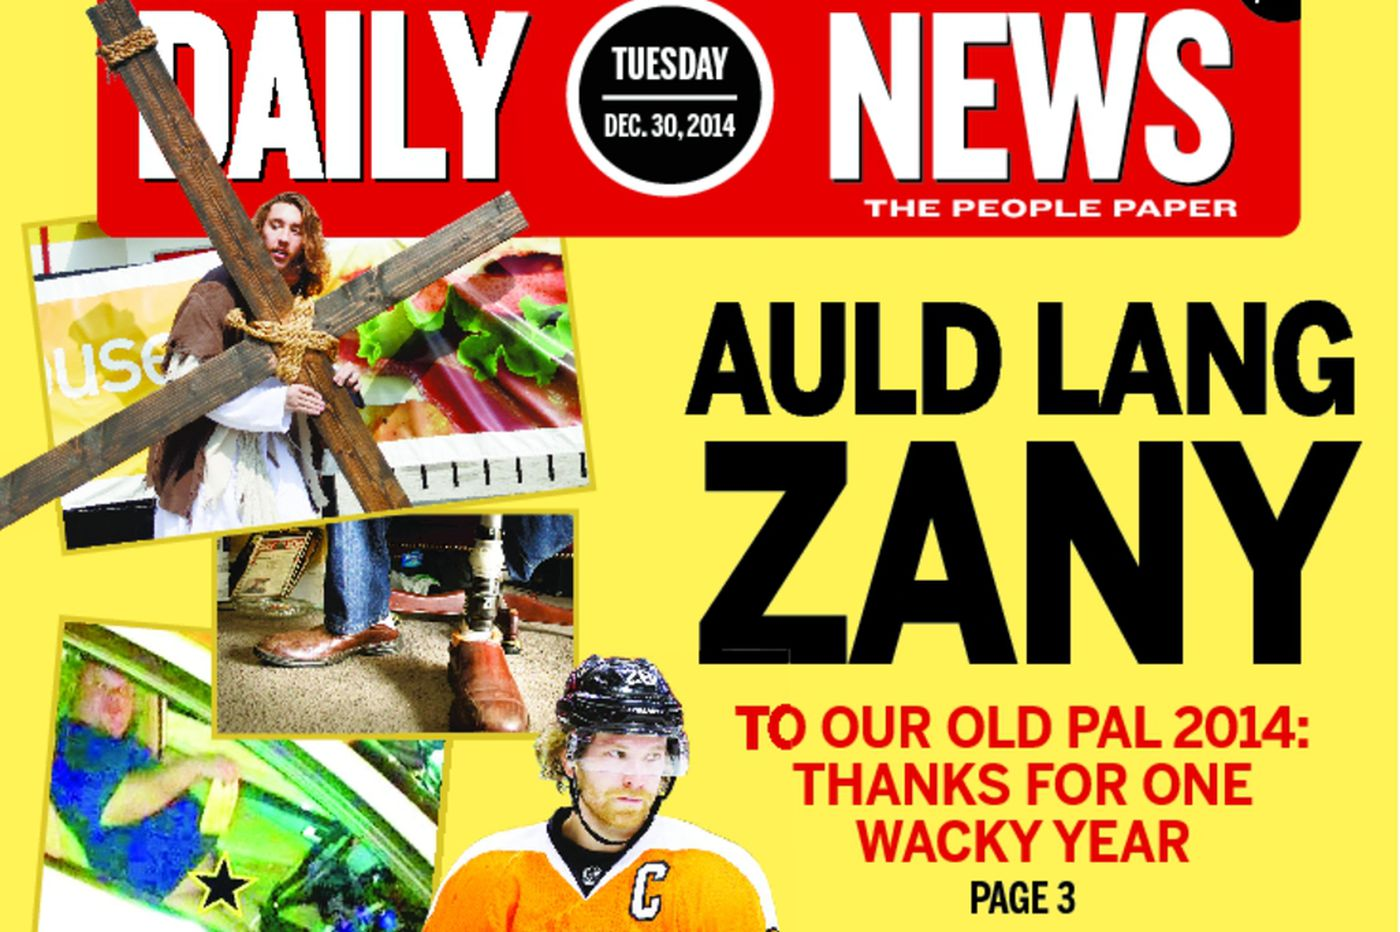 Dailynews Monthly Covers 12/30/14